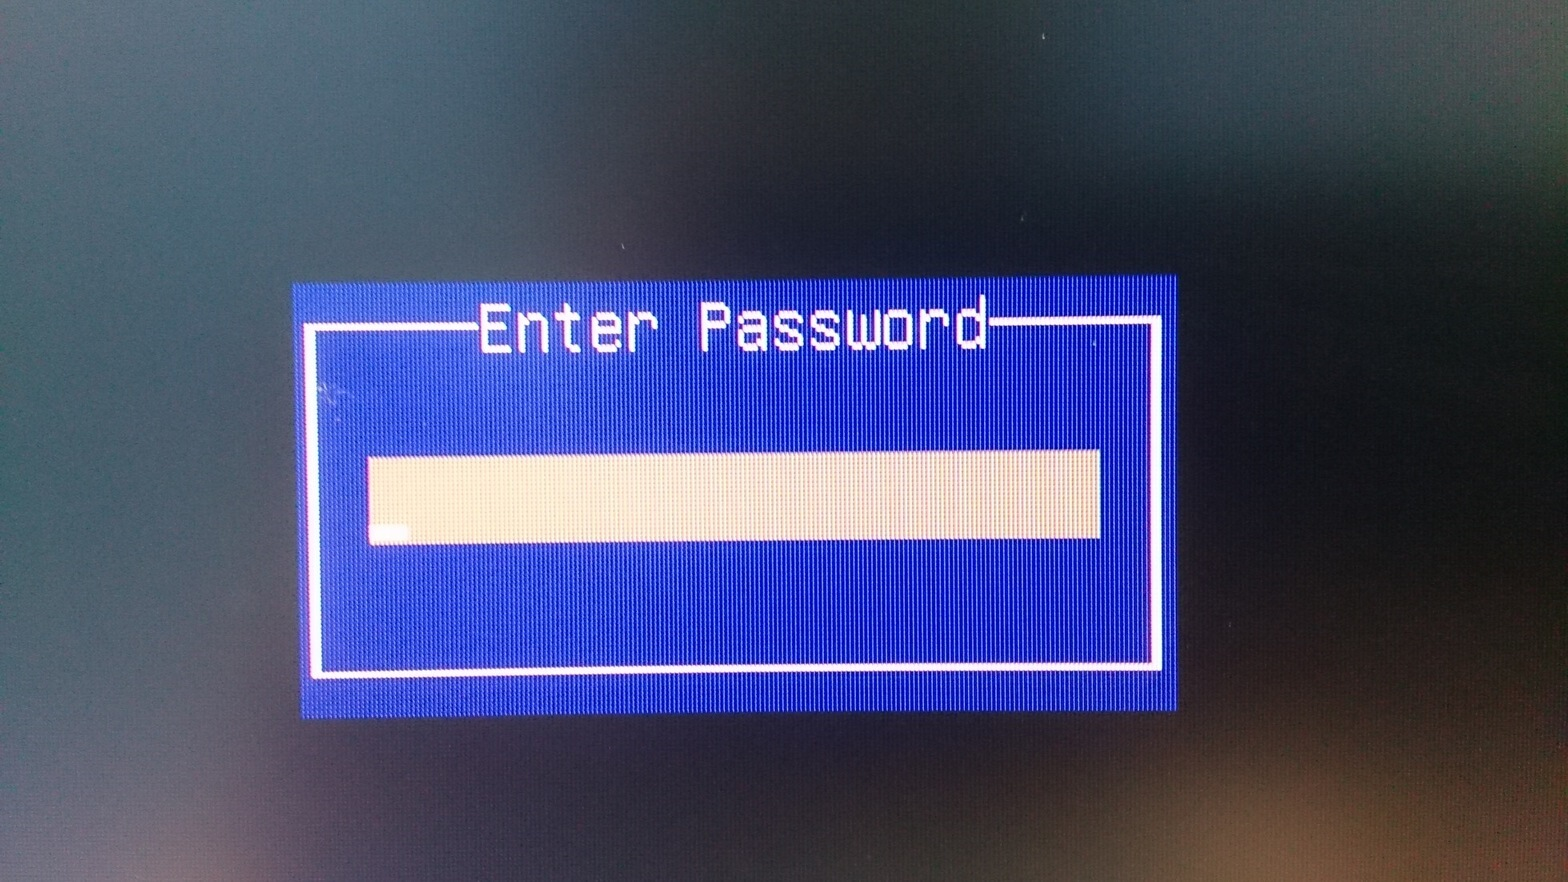 UP Board Enter Password